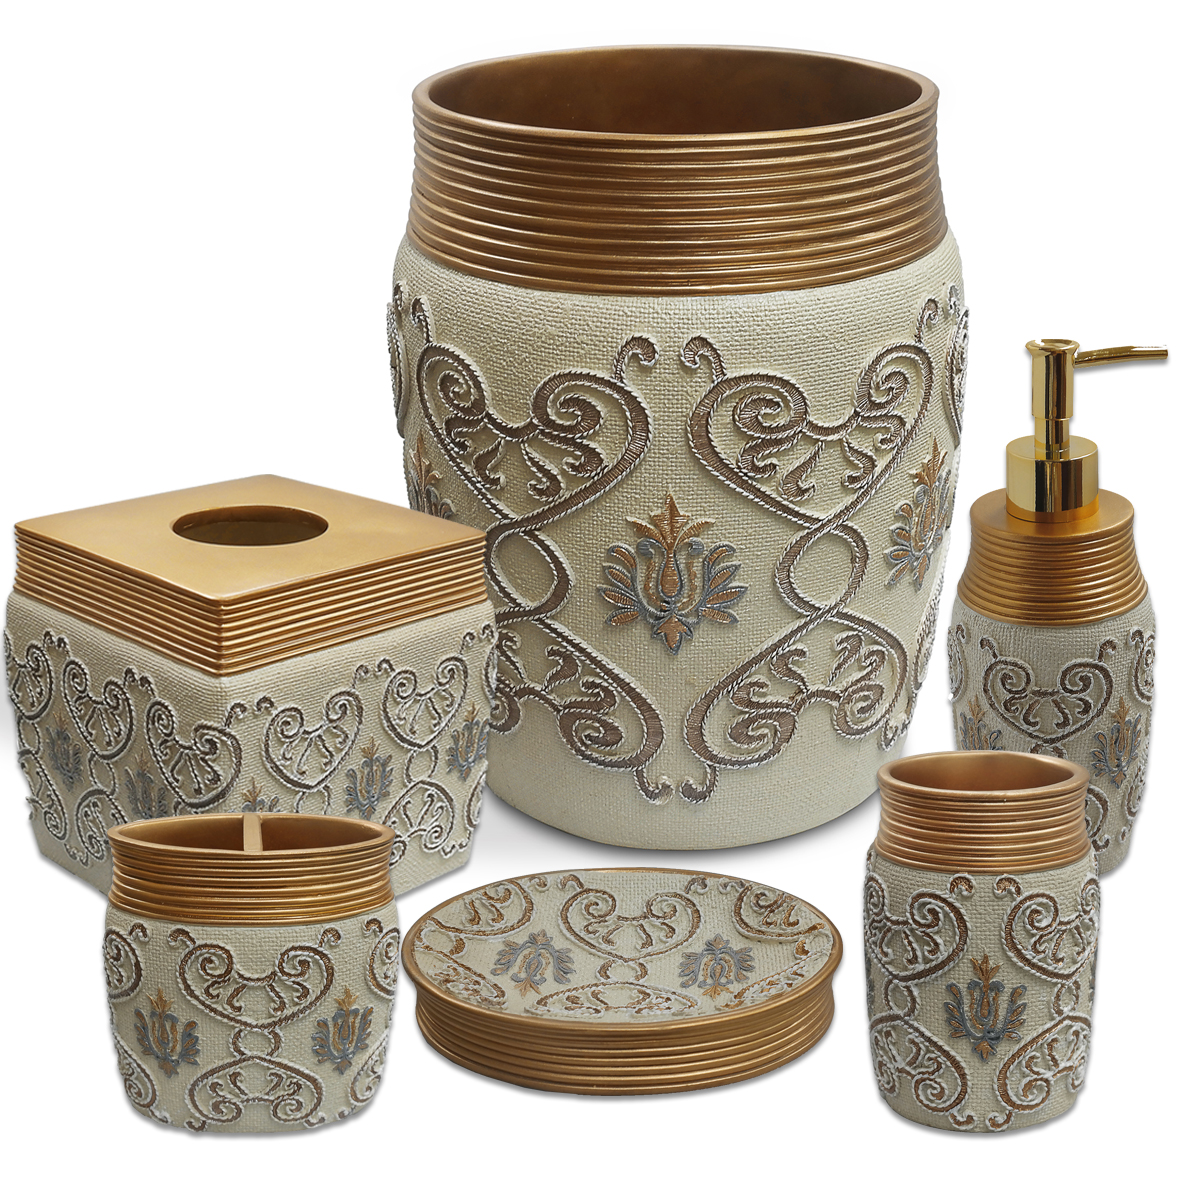 Popular Bath Savoy Bathroom 6 Piece Bath Accessory Set  Gold/Ivory